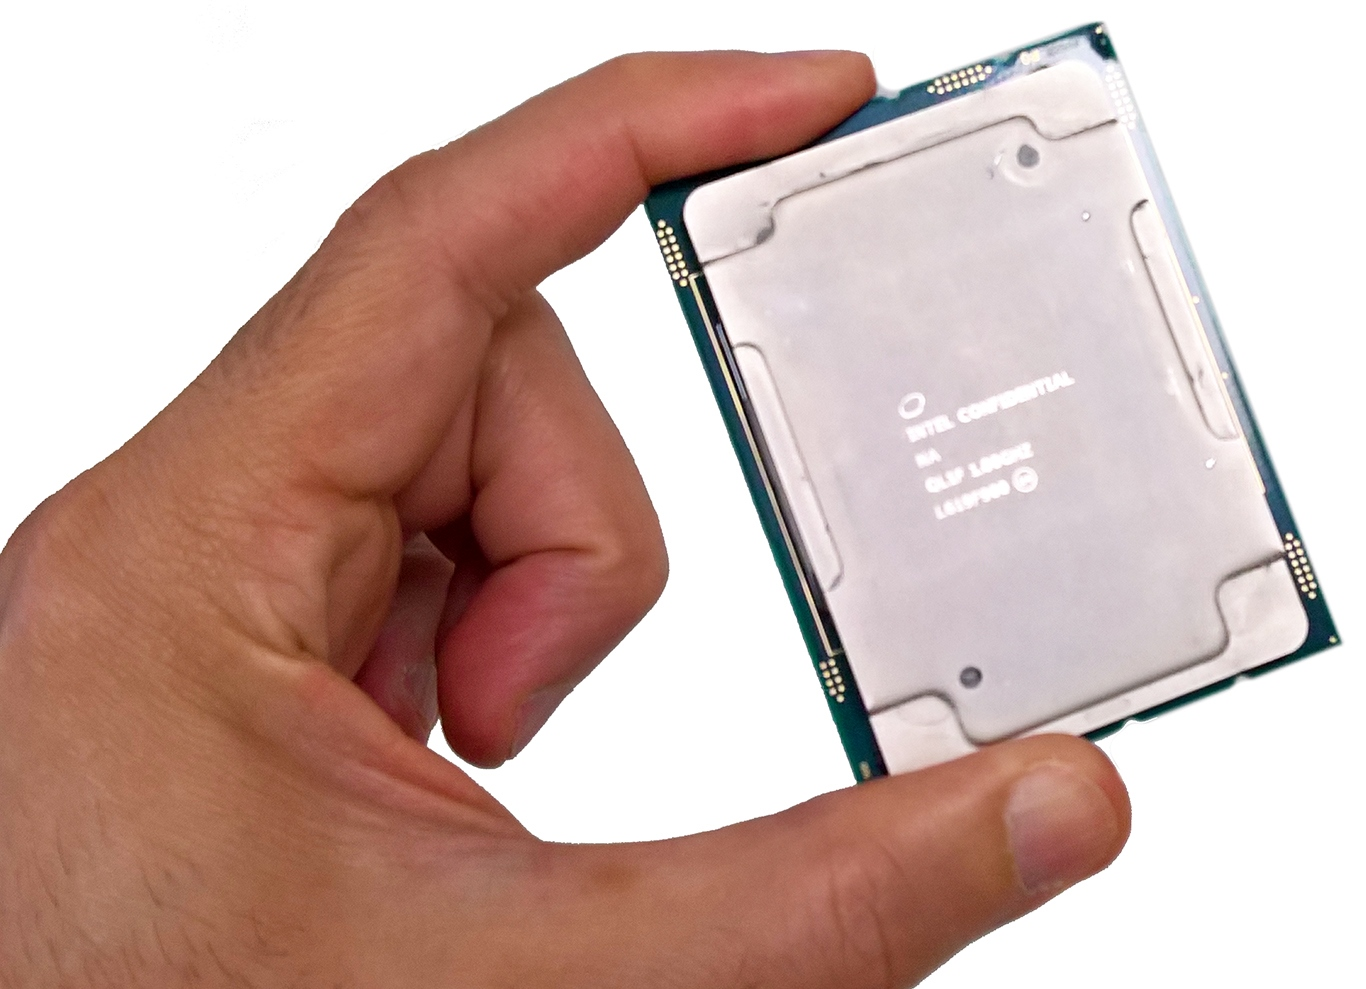 Intel Xeon Scalable Debuts: Dual Xeon Platinum 8176 With 112 Threads Tested